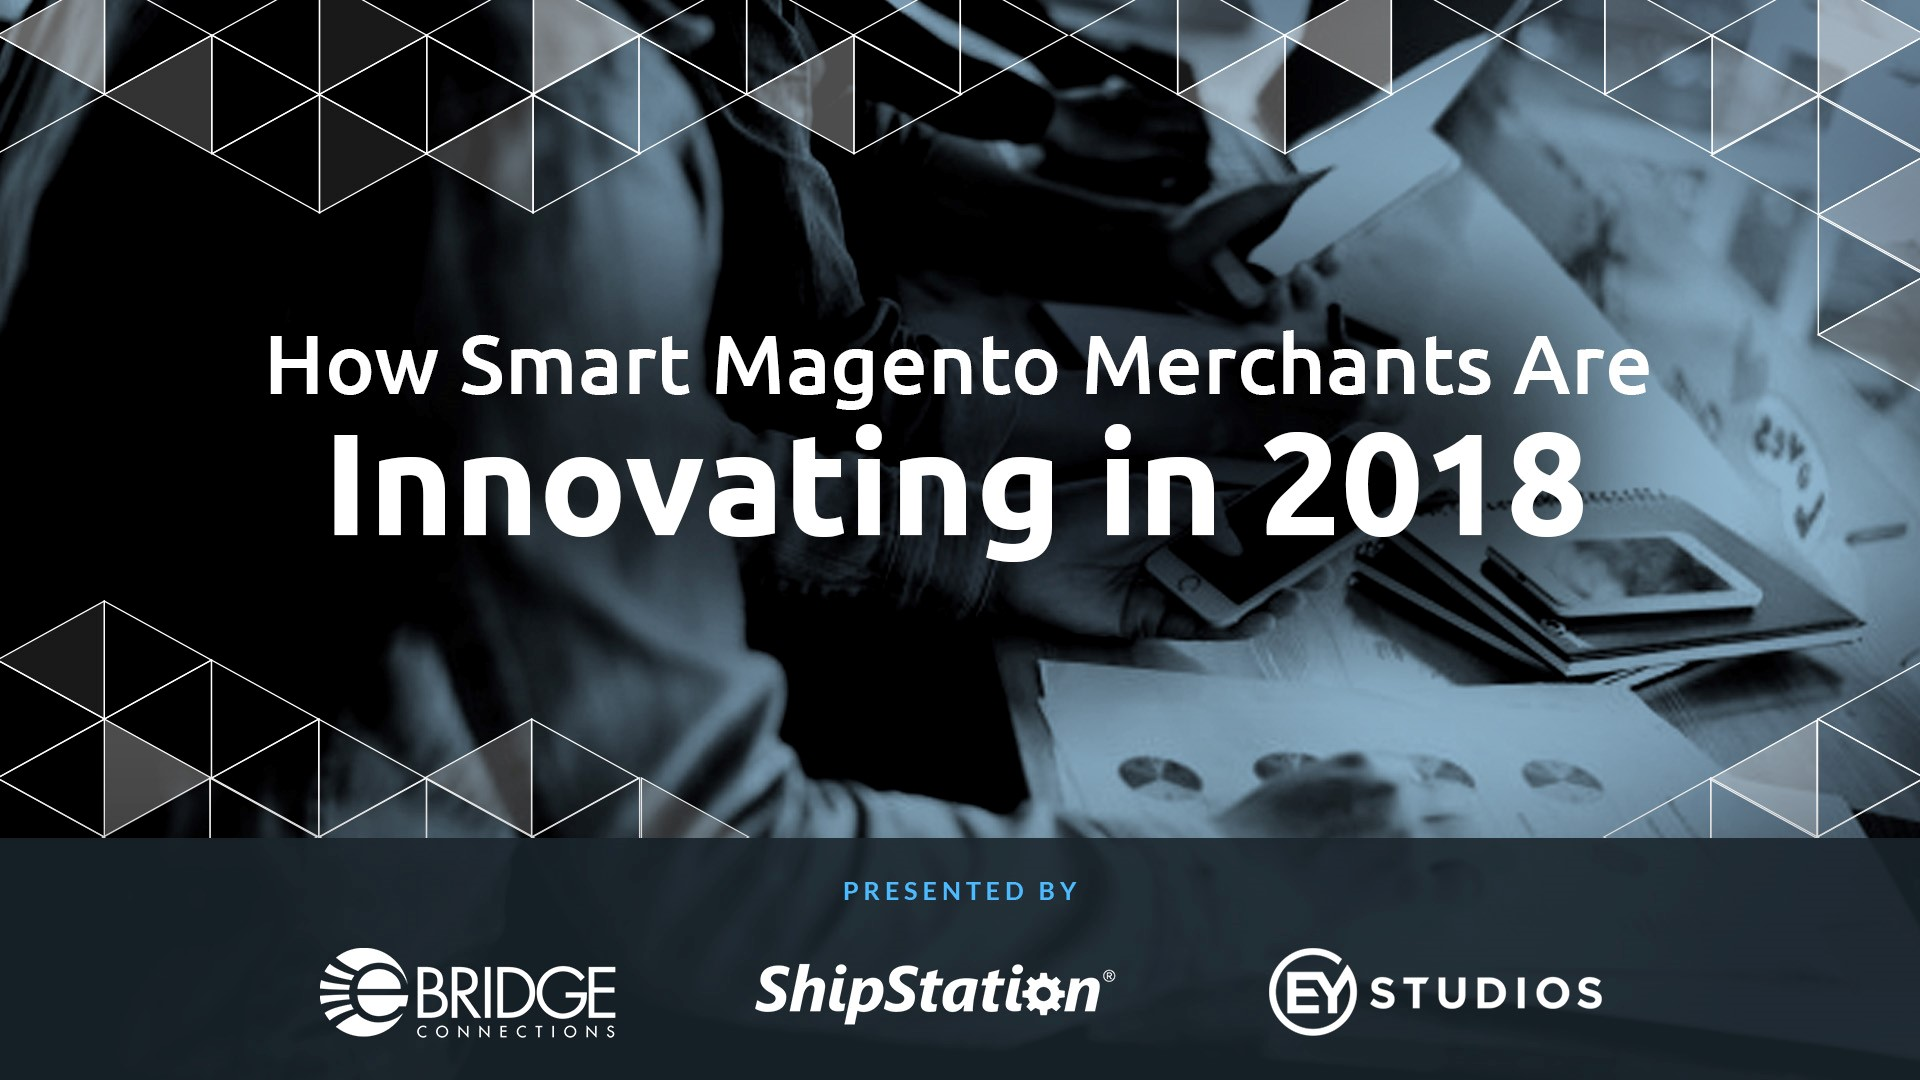 NEW: How Smart Magento Merchants Are Innovating in 2018